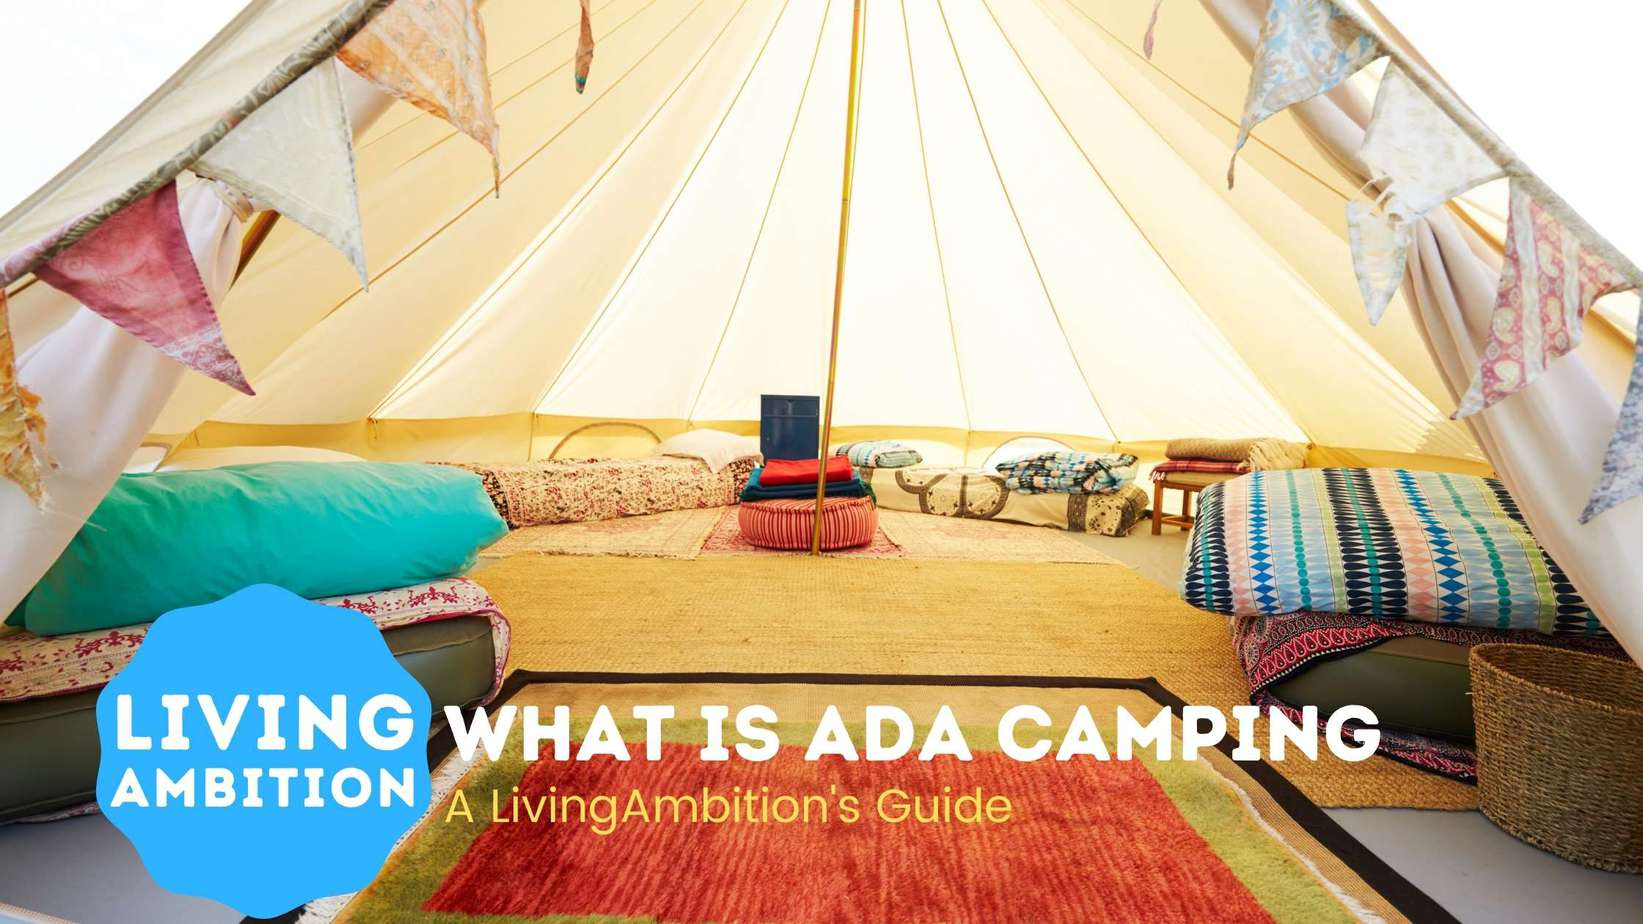 what is ada camping